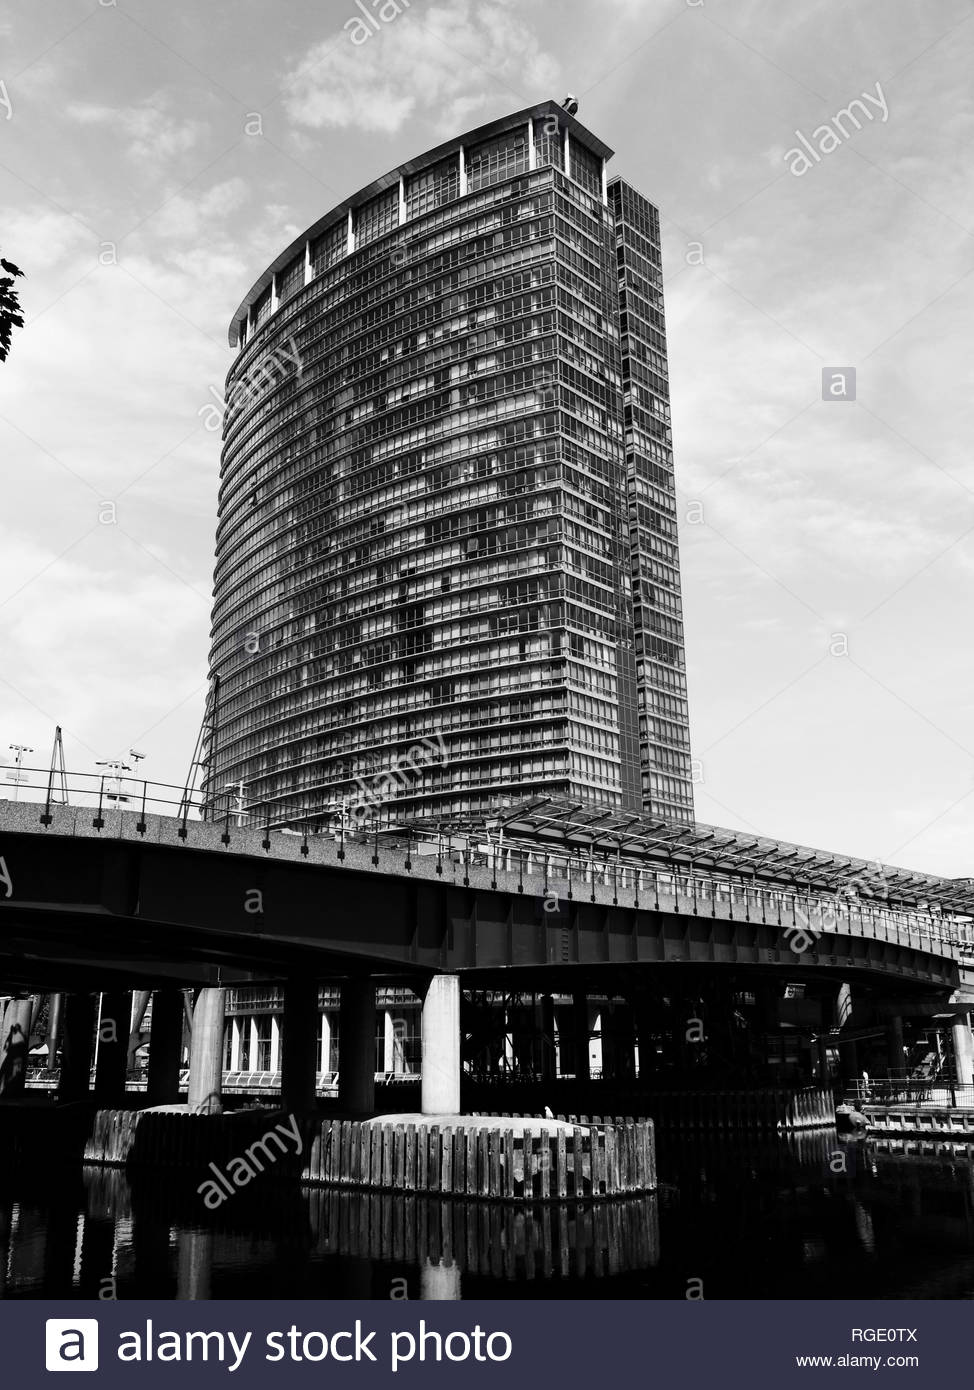 Black and white London Marriott Hotel, West India Quay, Docklands, London, UK - Stock Image